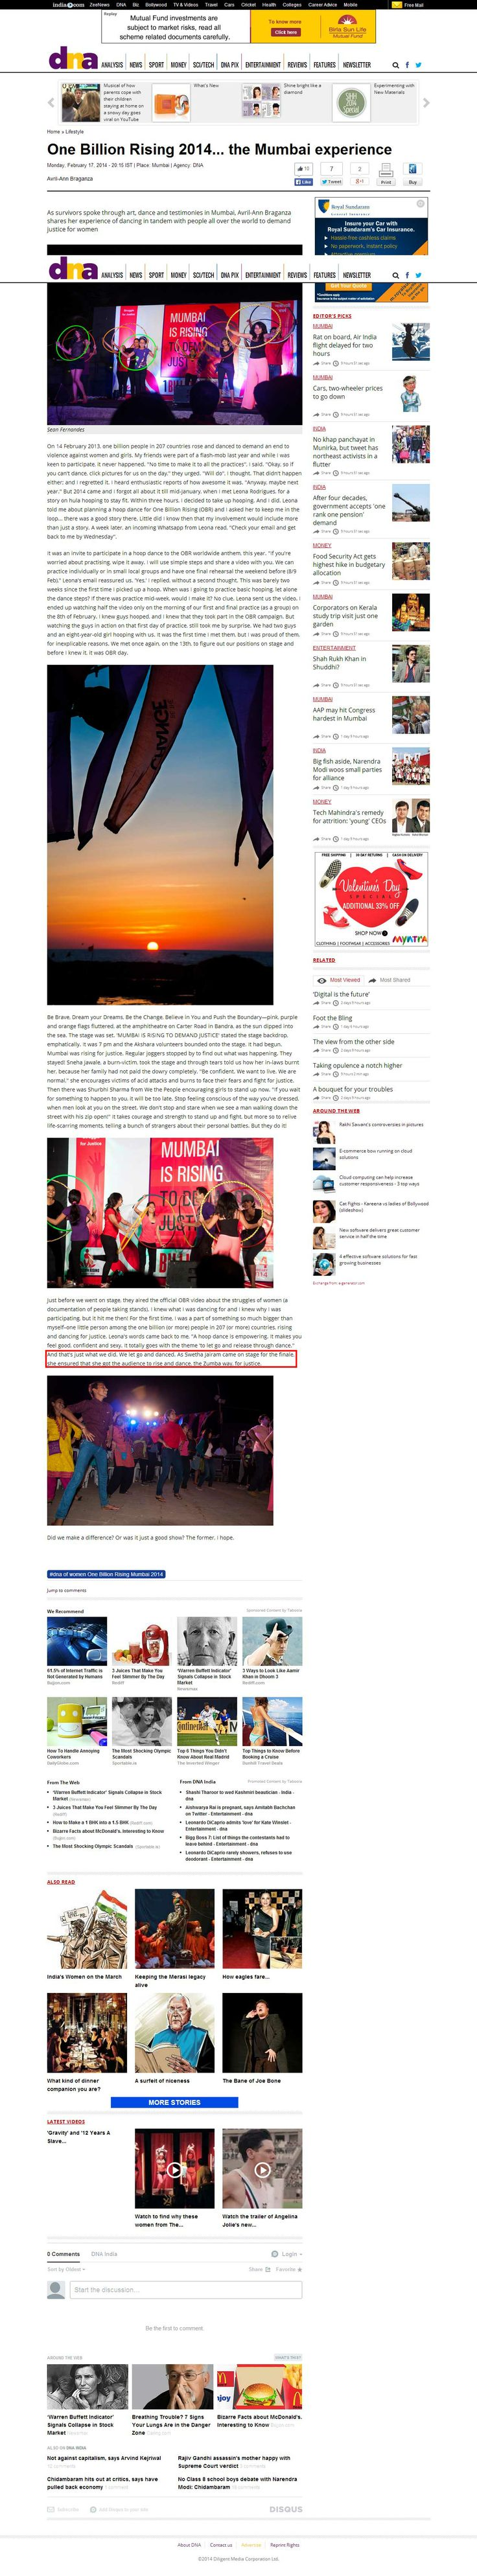 One Billion Rising 2014... the Mumbai experience Monday, February 17, 2014 - 20:15 IST   Place: Mumbai   Agency: DNA Avril-Ann Braganza  As Swetha Jairam came on stage for the finale, she ensured that she got the audience to rise and dance, the Zumba way, for justice.